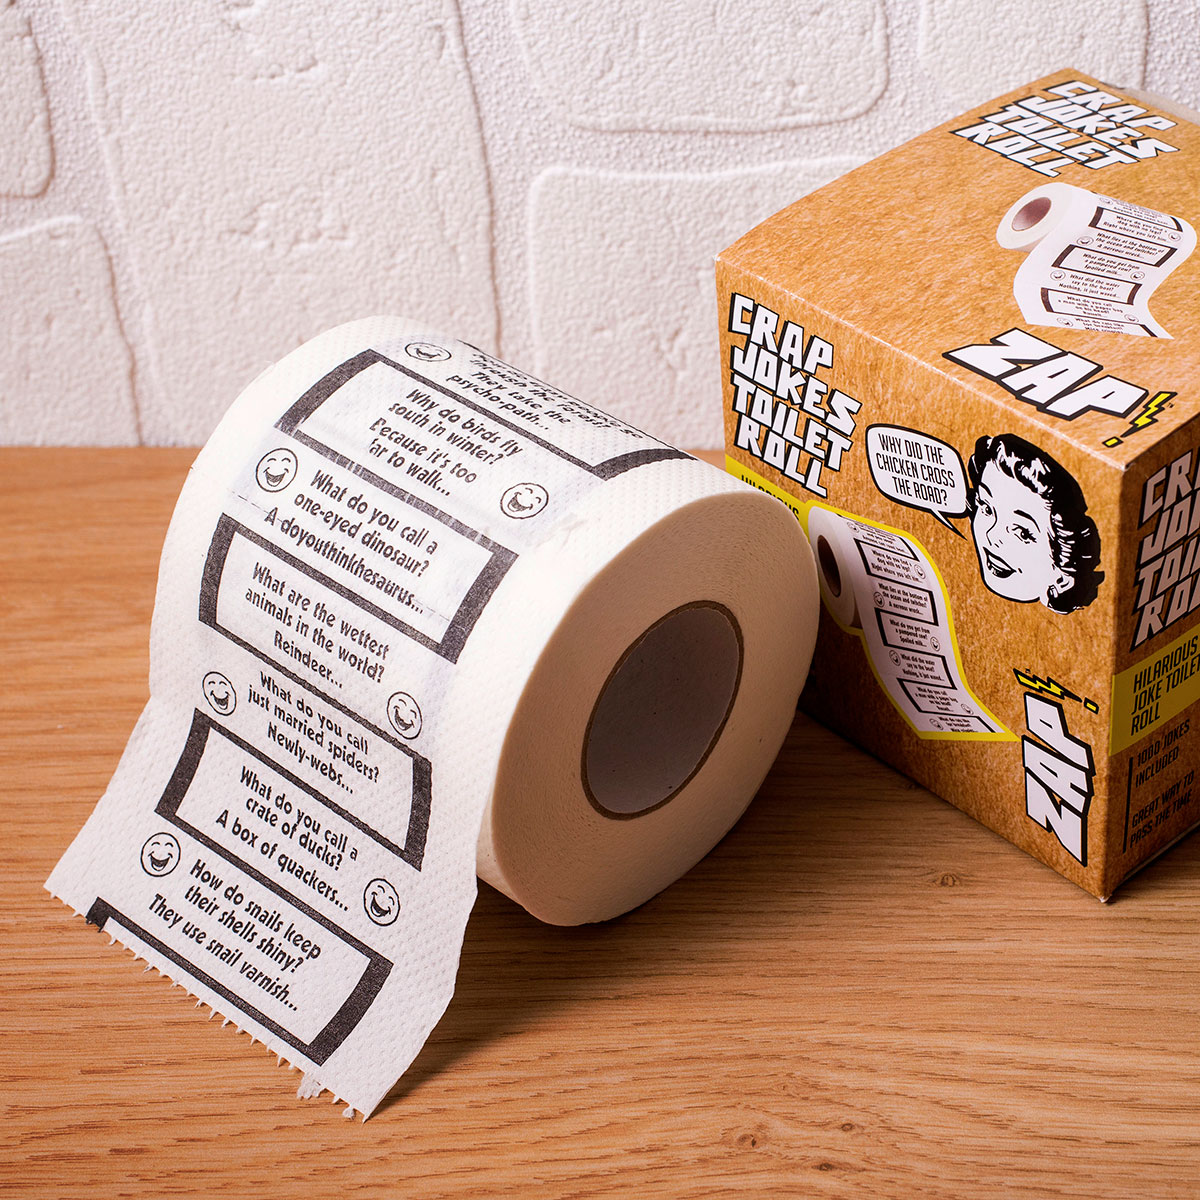 Crap Jokes Toilet Roll - 18th gift